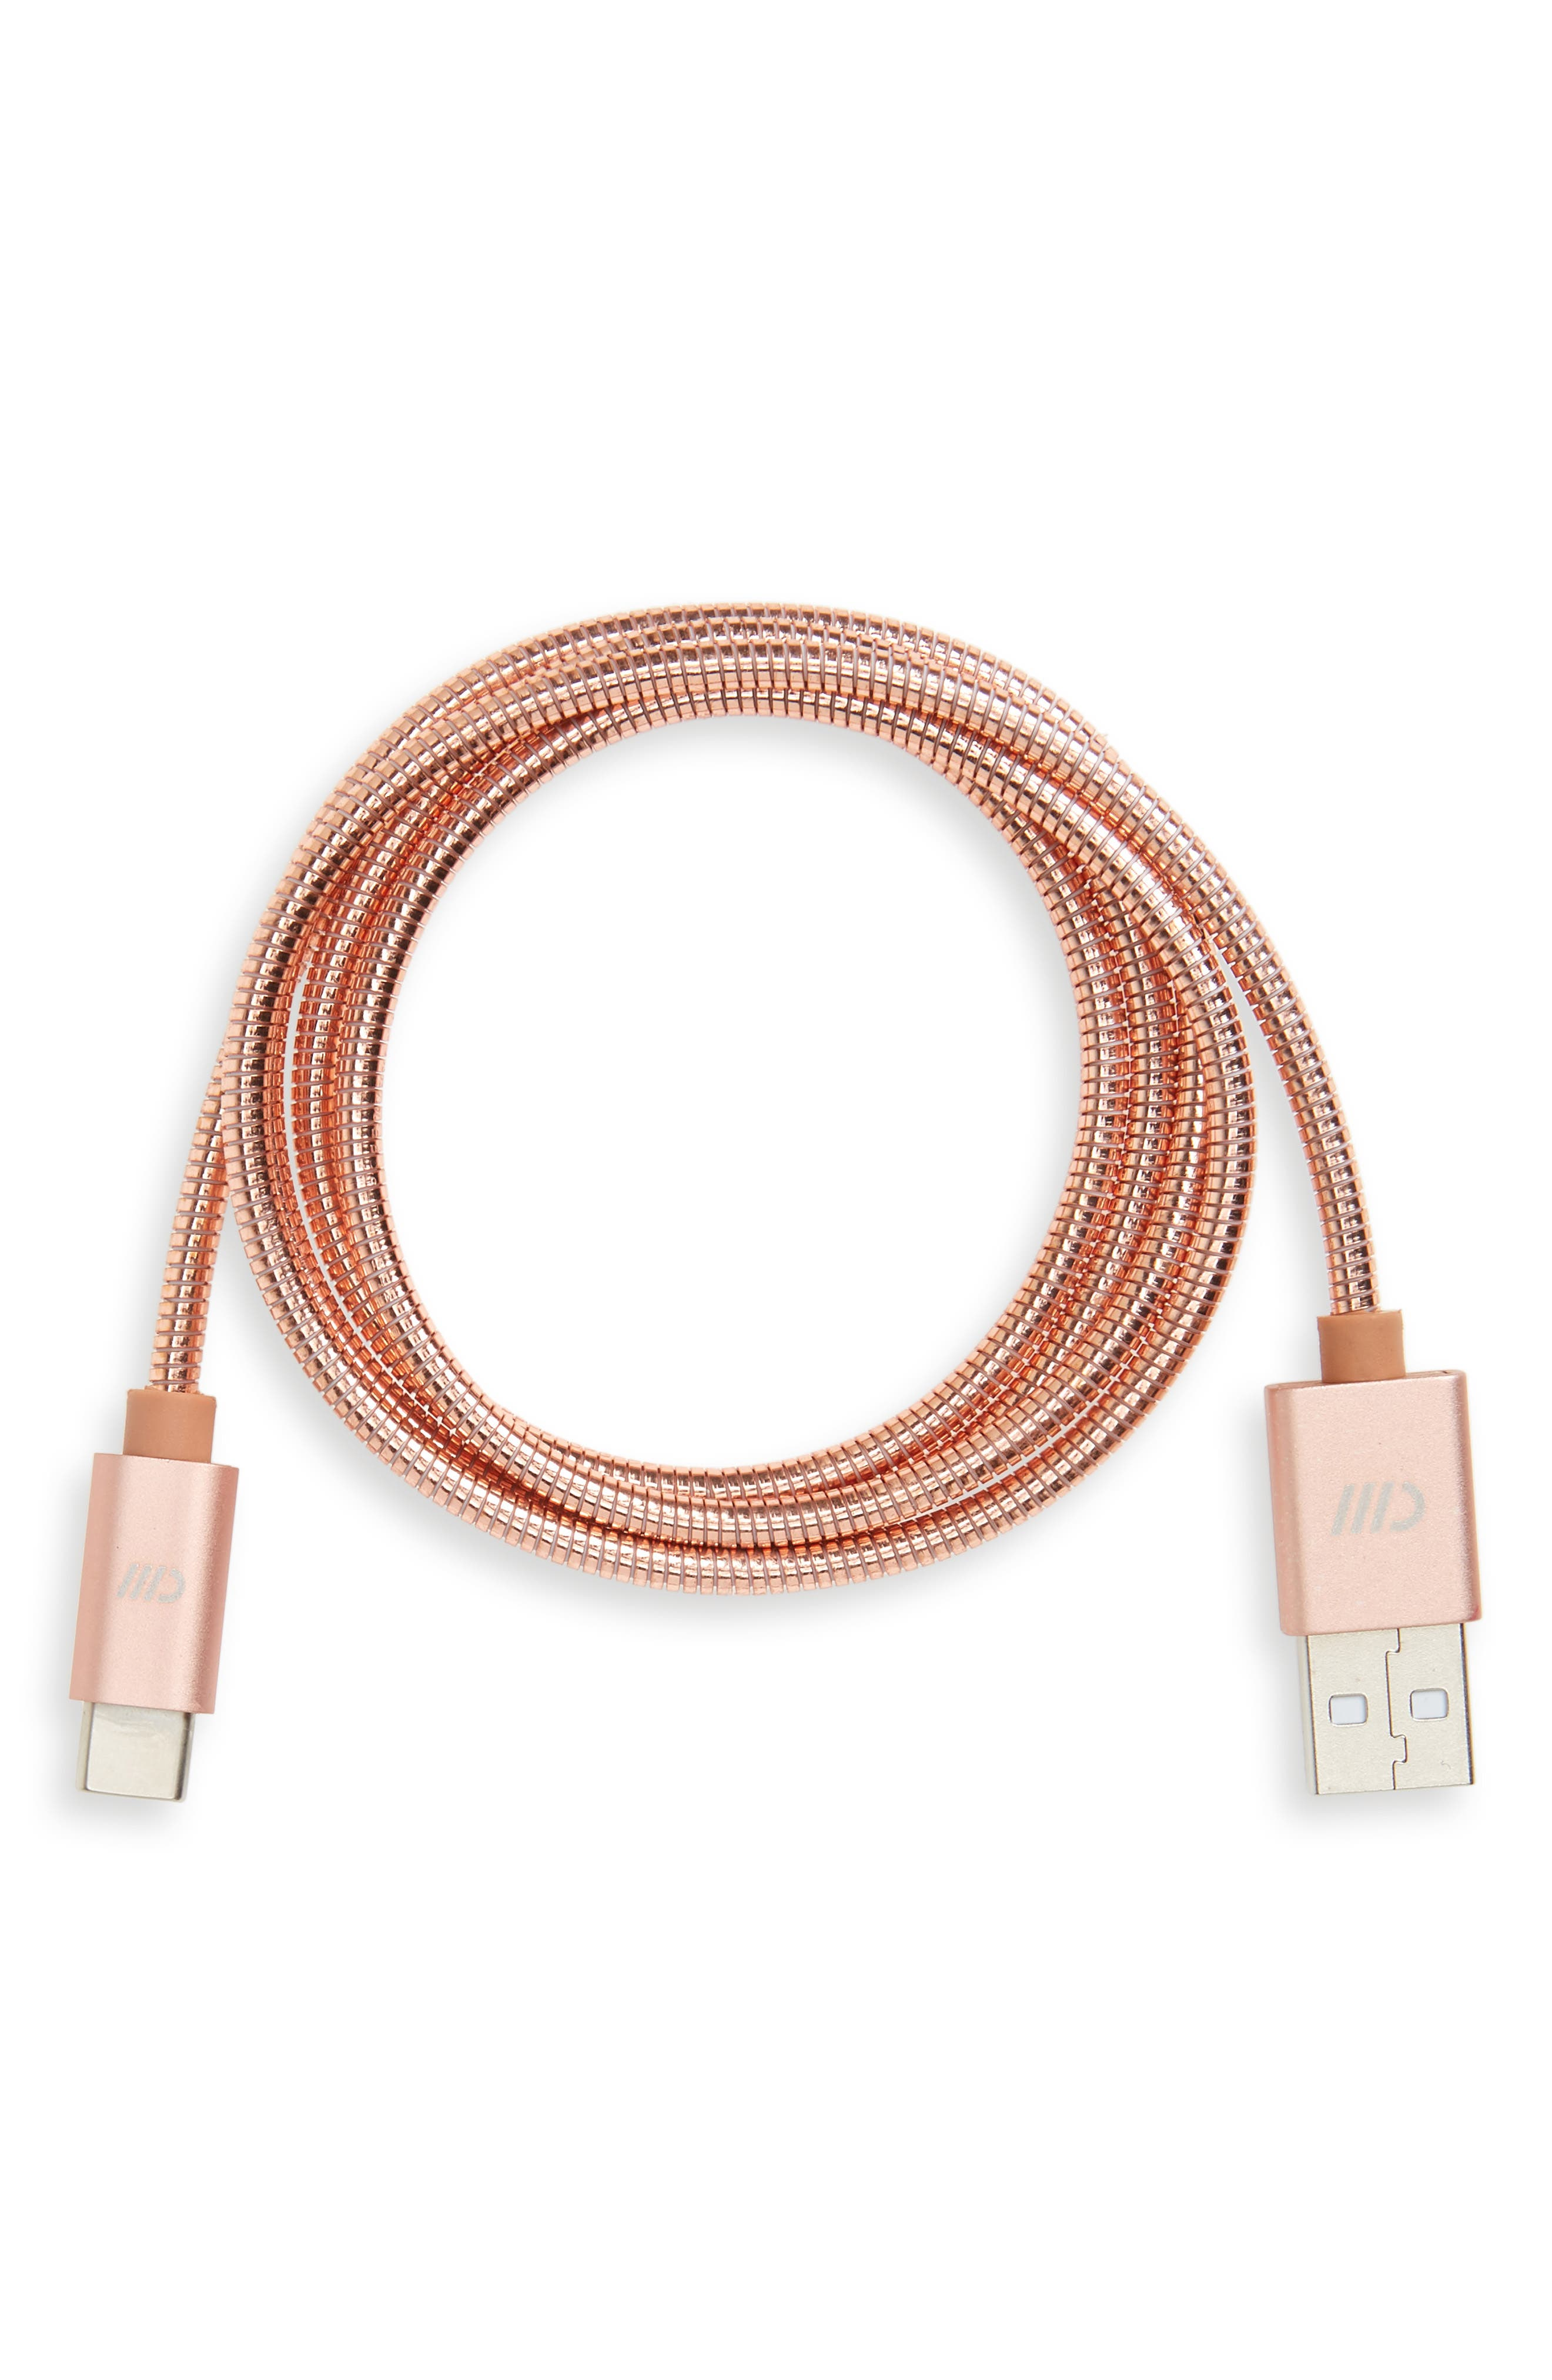 3-Foot USB-C to USB Stainless Steel Charging Cable,                             Main thumbnail 1, color,                             650